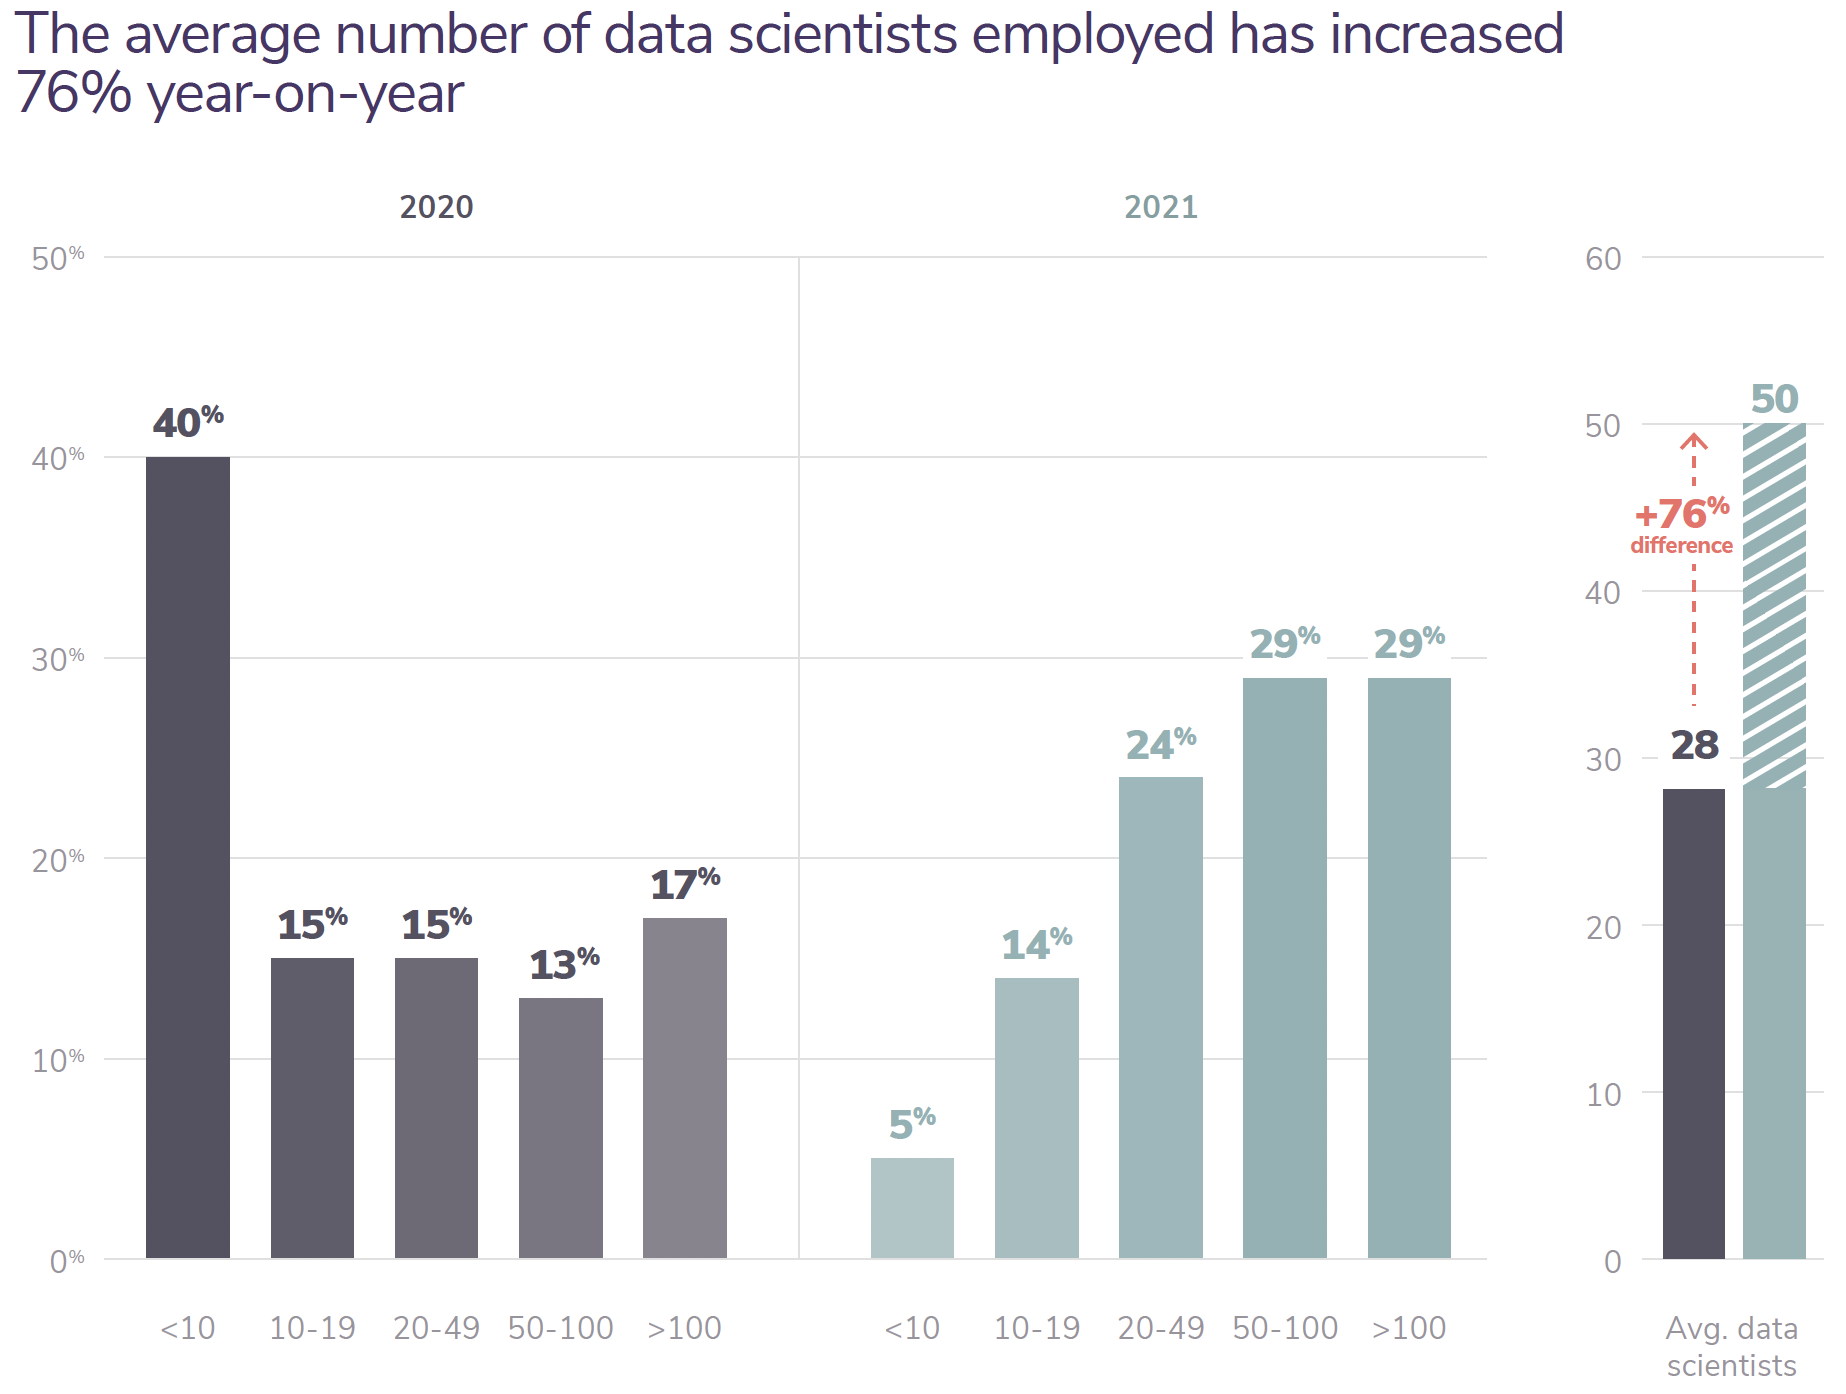 the average number of data scientists employed has increased 76% year-on-year